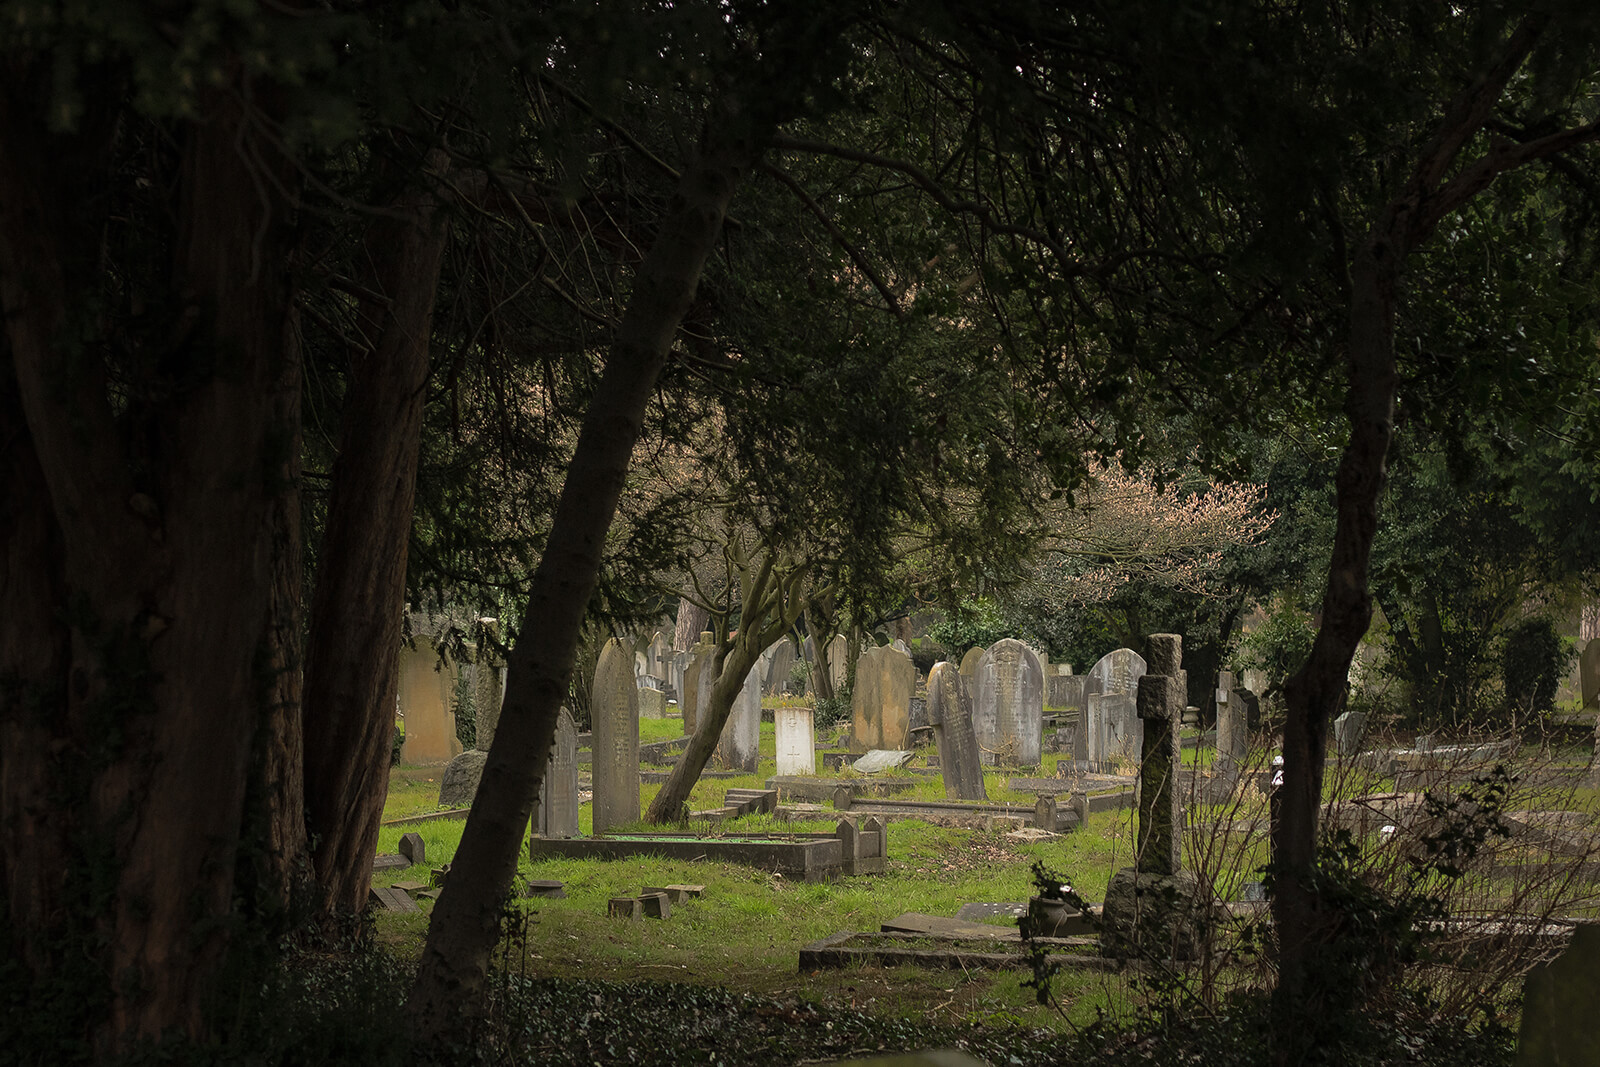 Experience the offbeat Nashville by exploring a cemetery and searching for famous graves